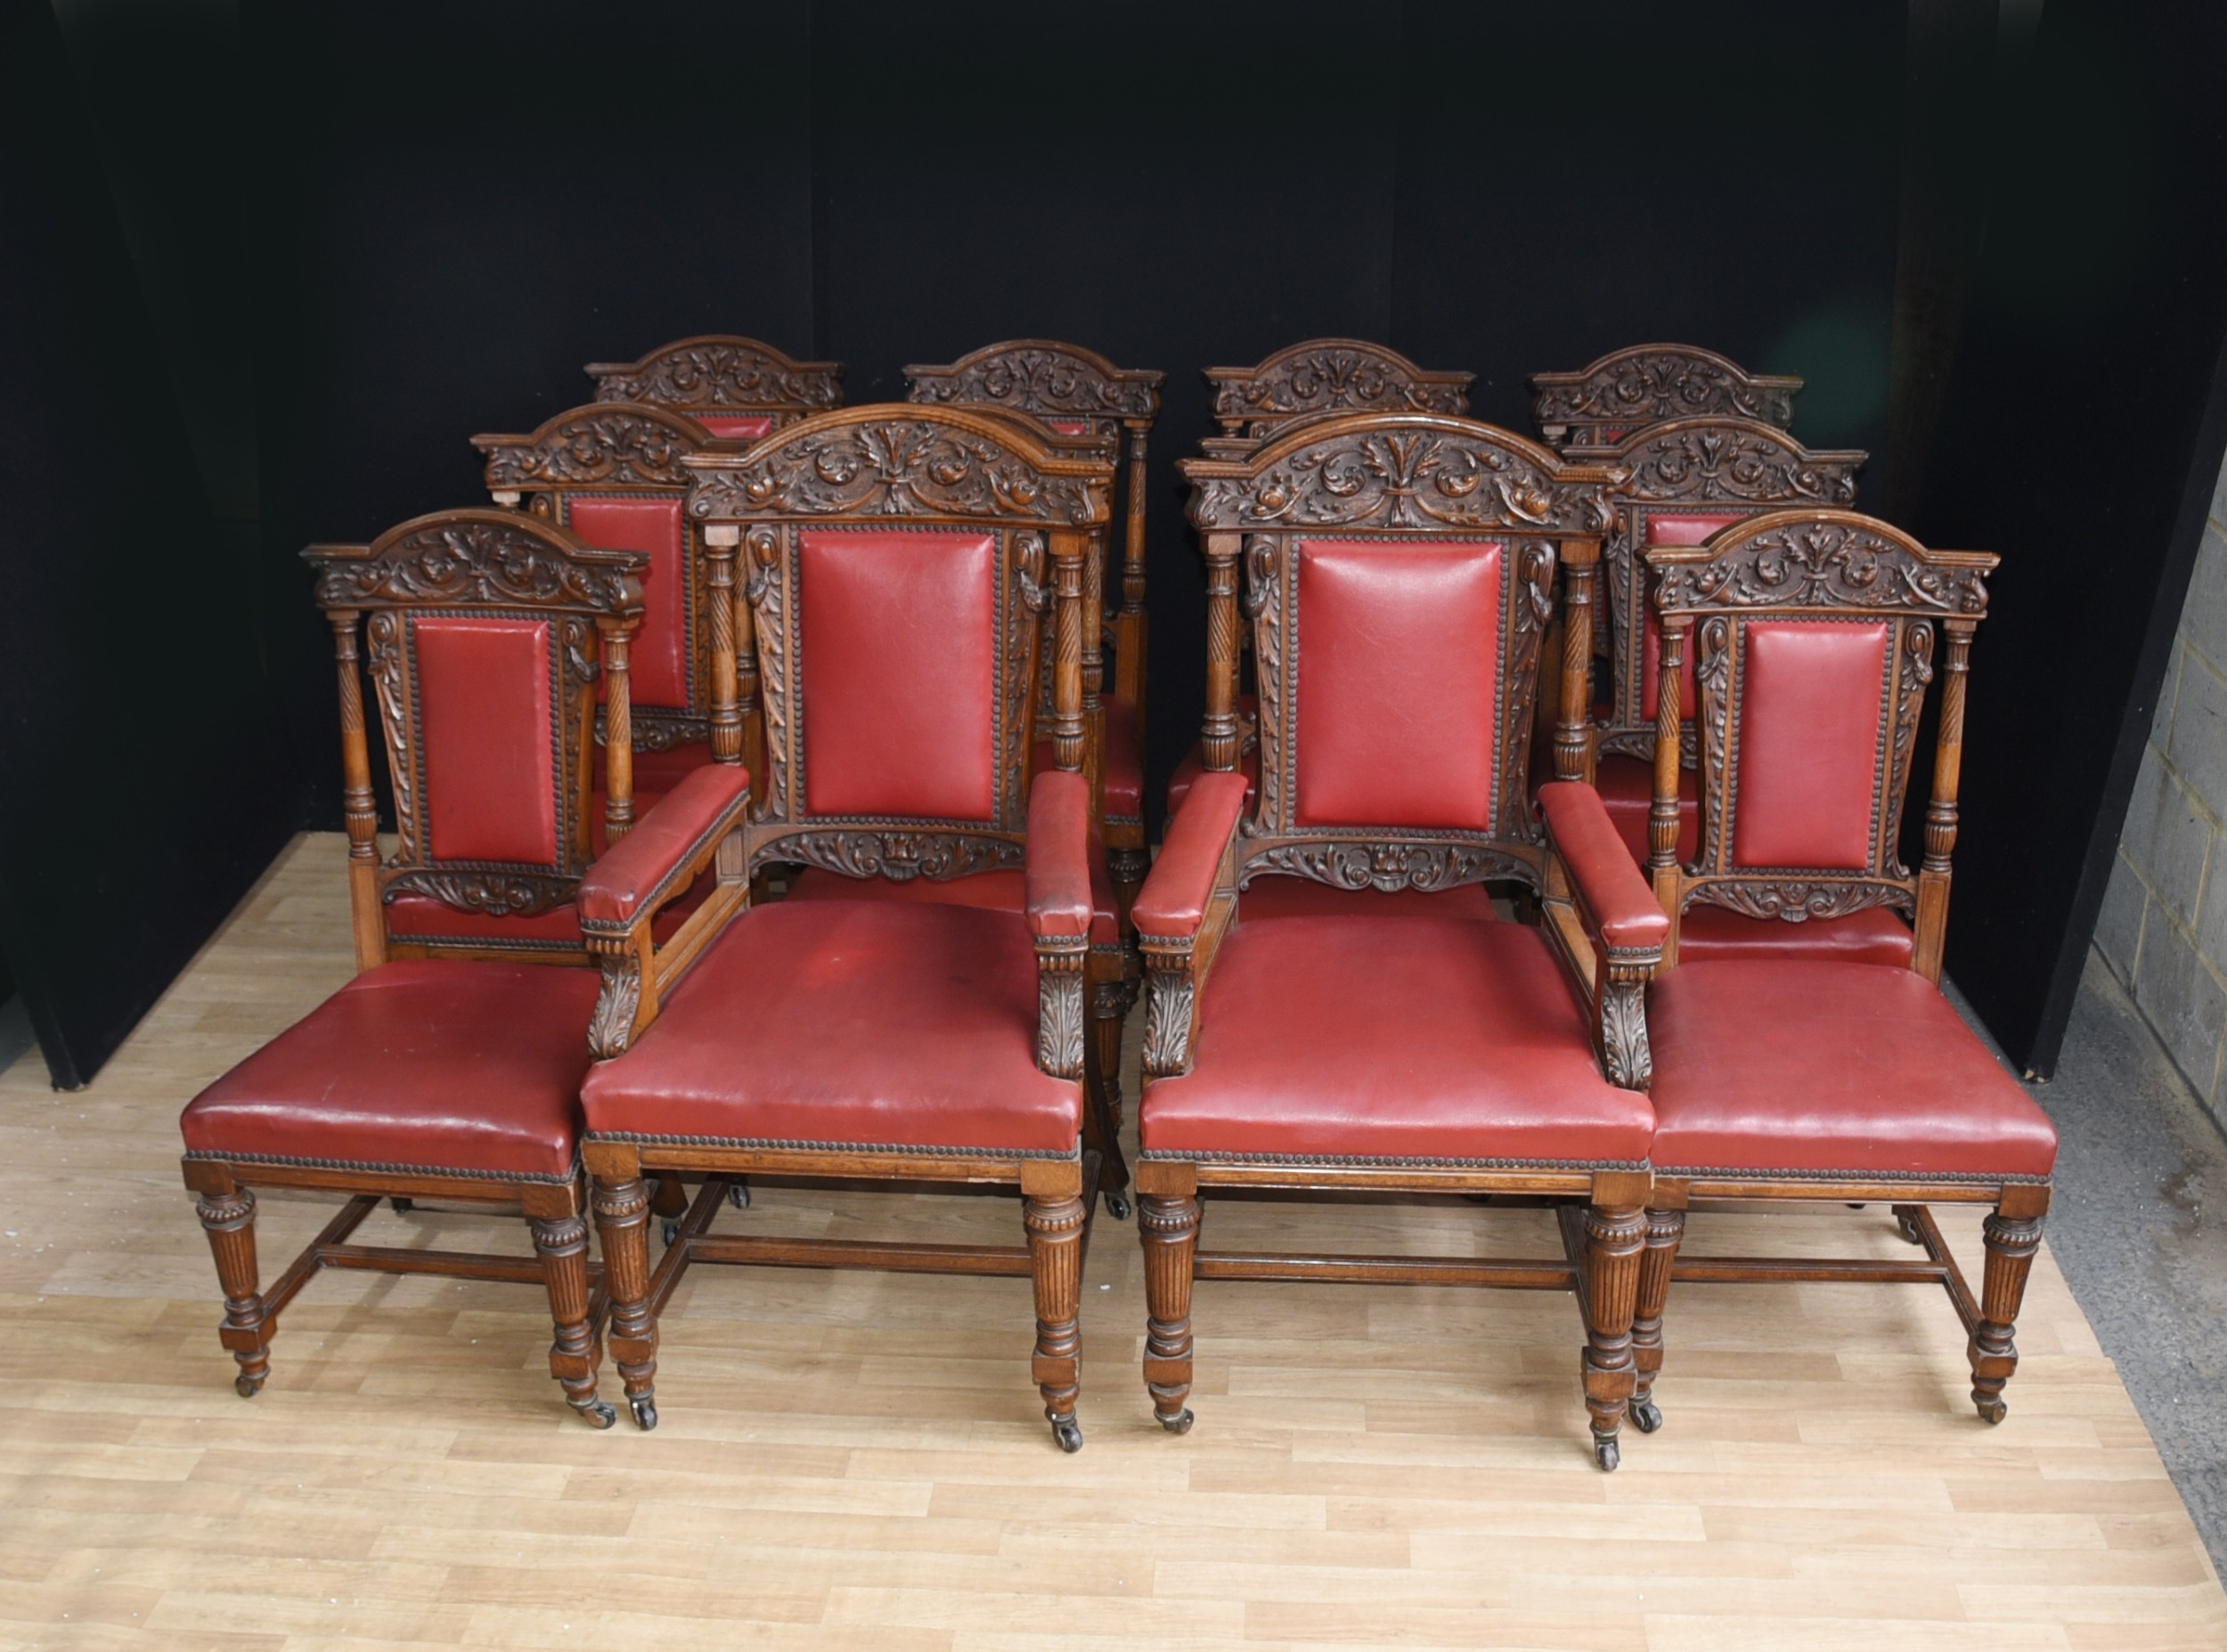 Dining Set 12 Chairs Set 12 Antique Oak Carved Dining Chairs In Gillows Manner